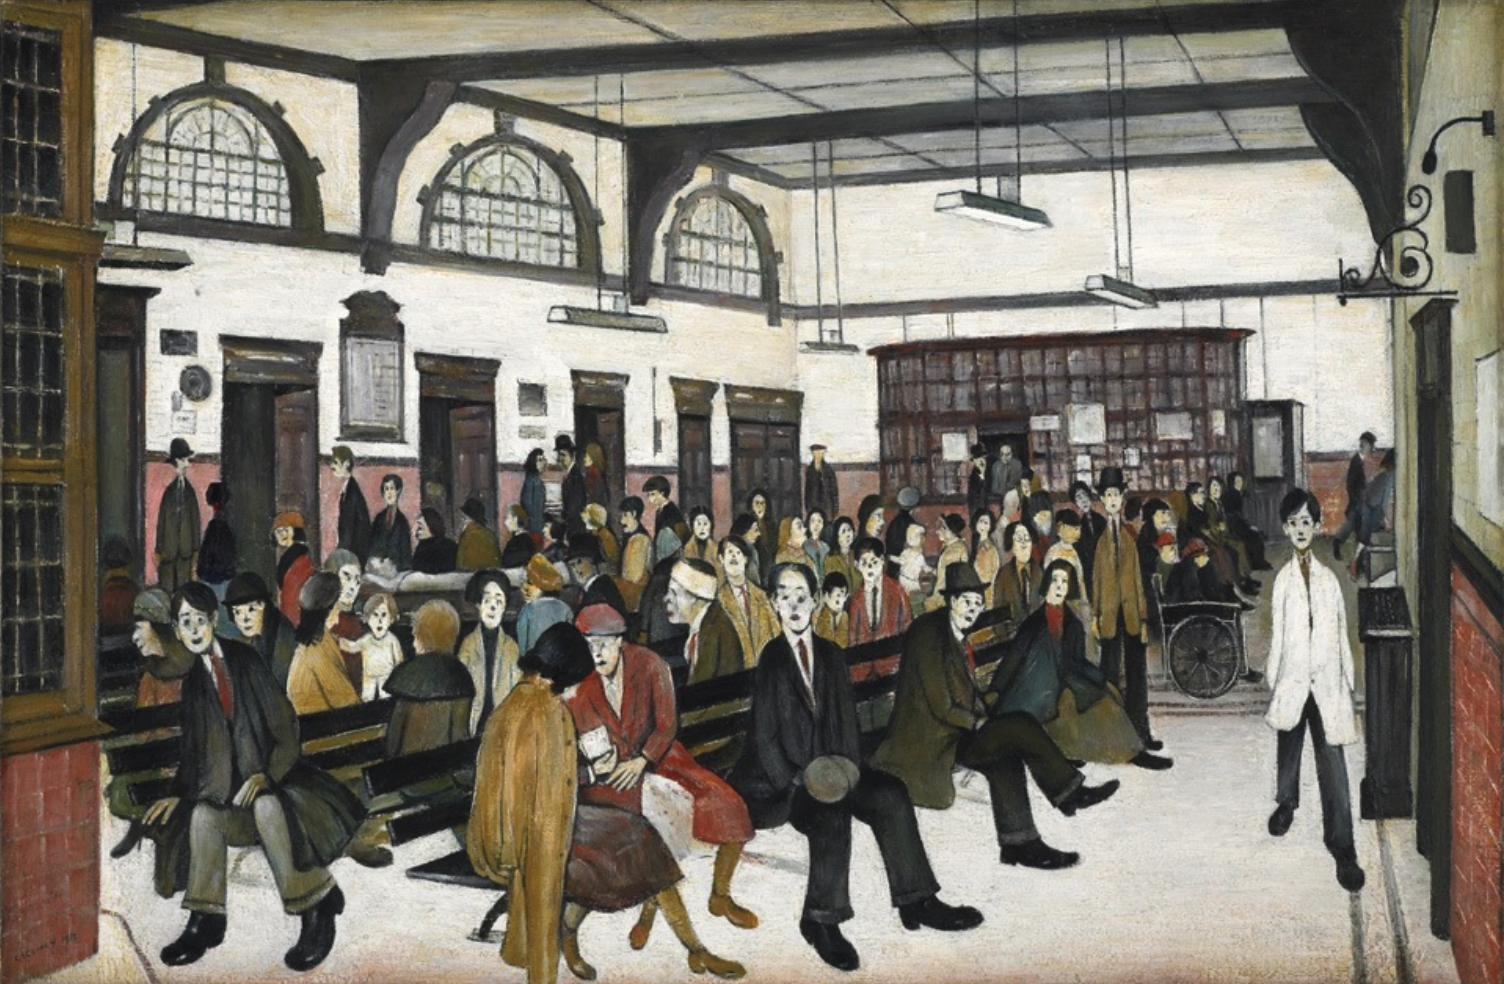 Ancoats Hospital Outpatients' Hall (1952) by Laurence Stephen Lowry (1887 - 1976), English artist.